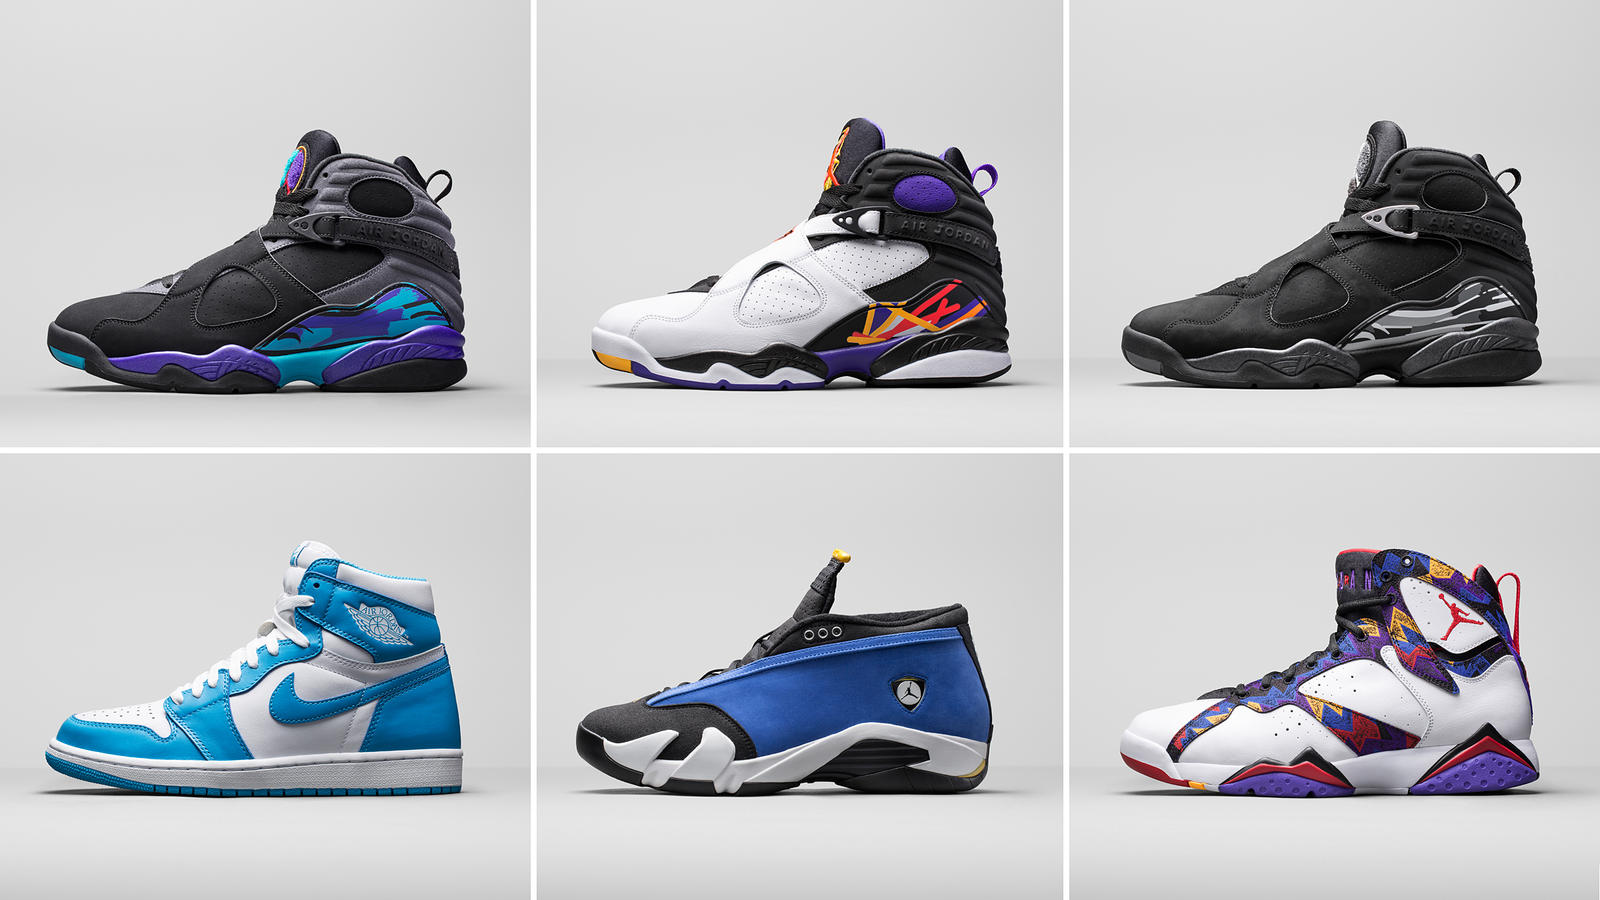 grossiste 59297 d7910 Jordan Brand Previews the Holiday 2015 Retro Lineup - Nike News